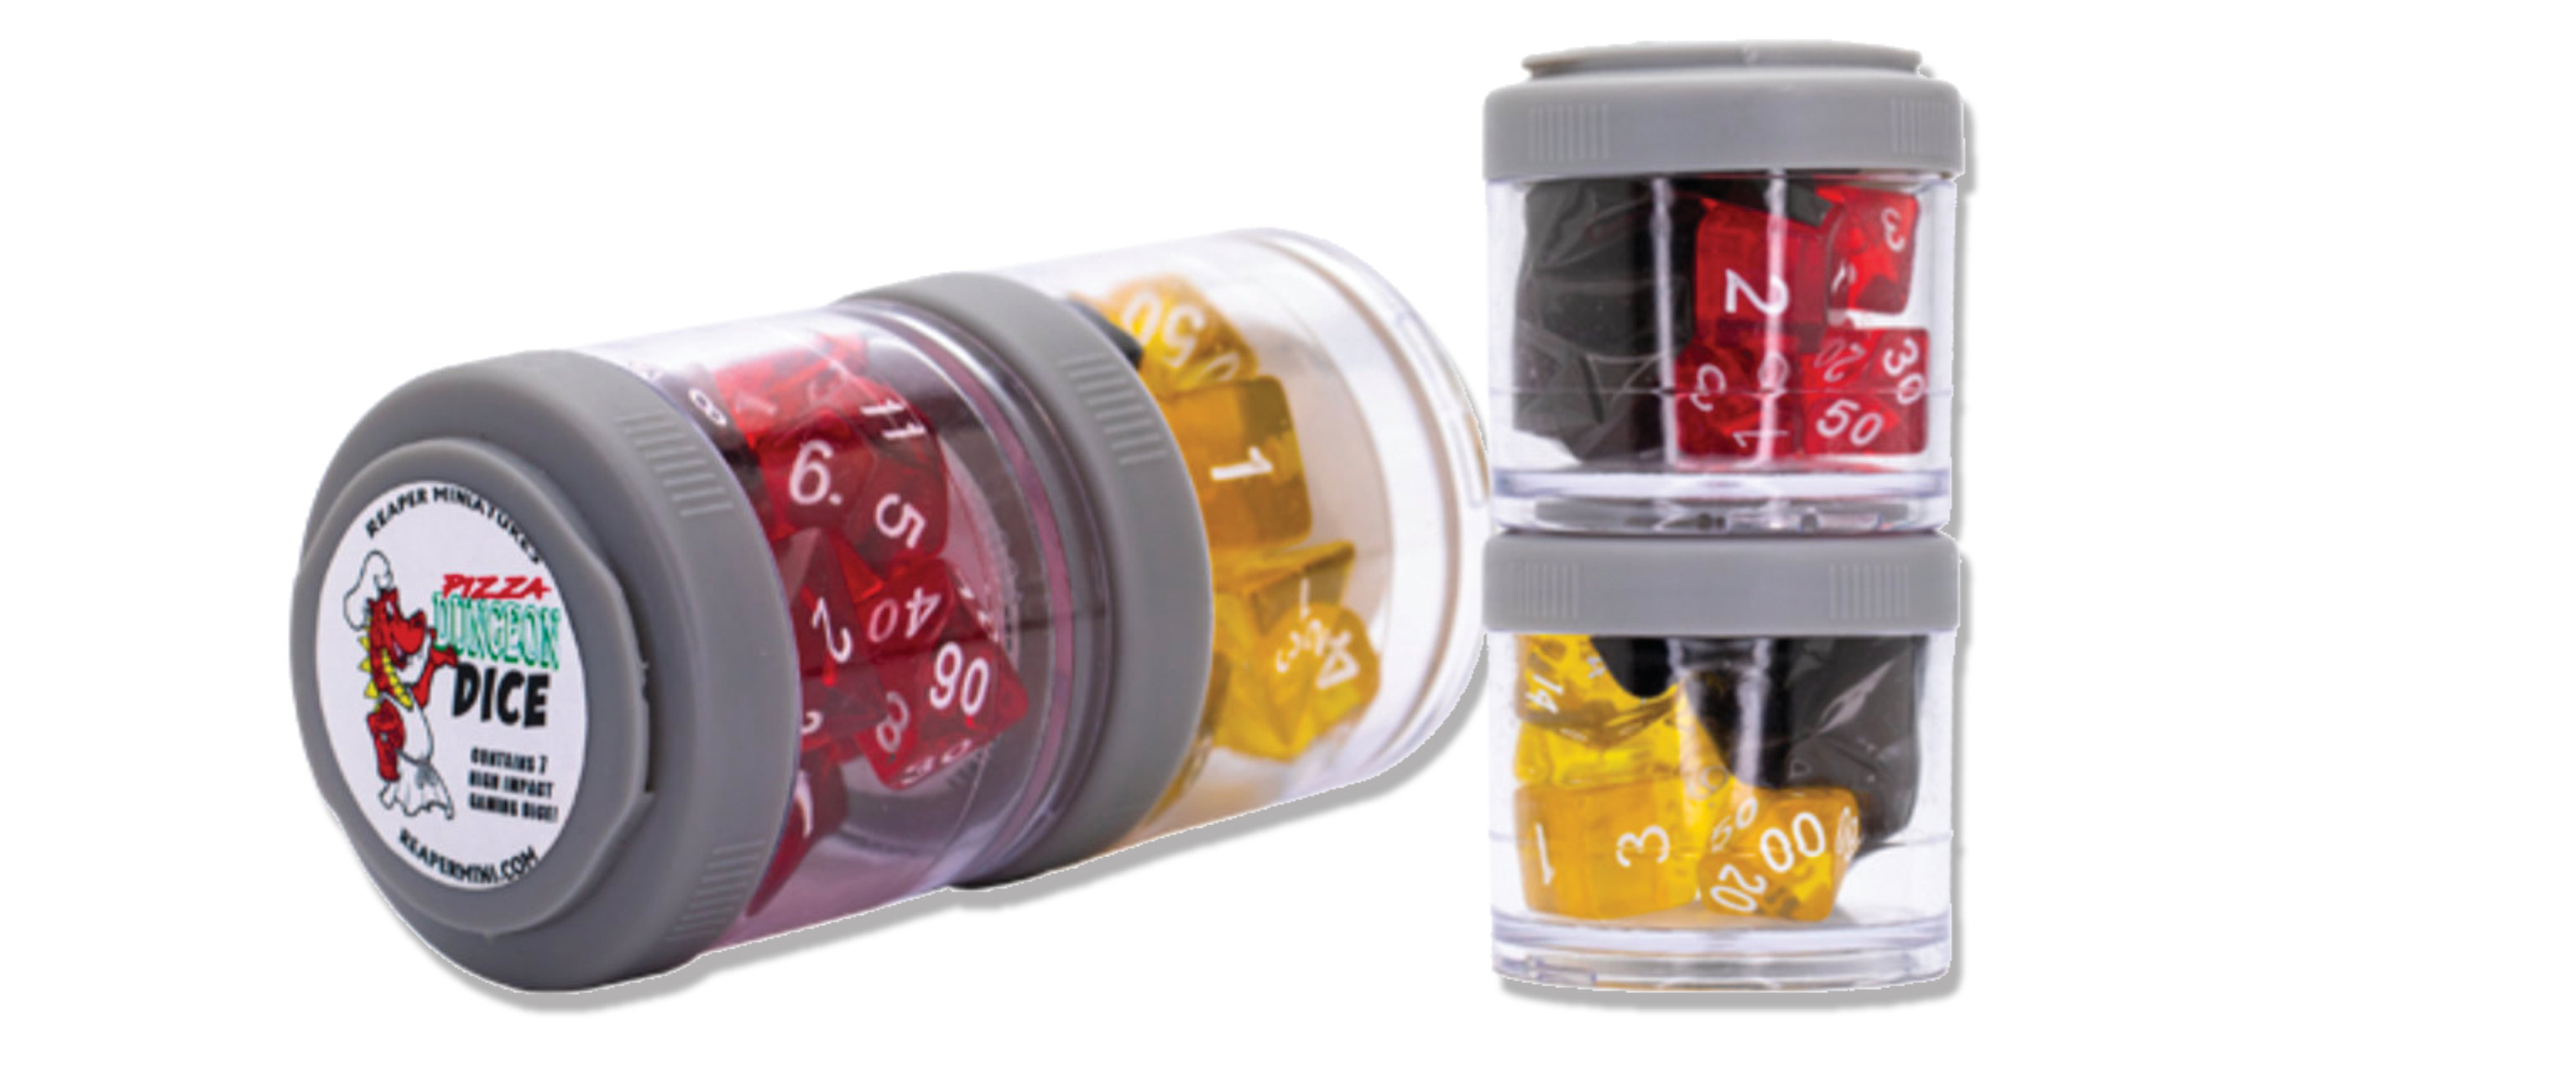 Dice Shakers stacked attractively.